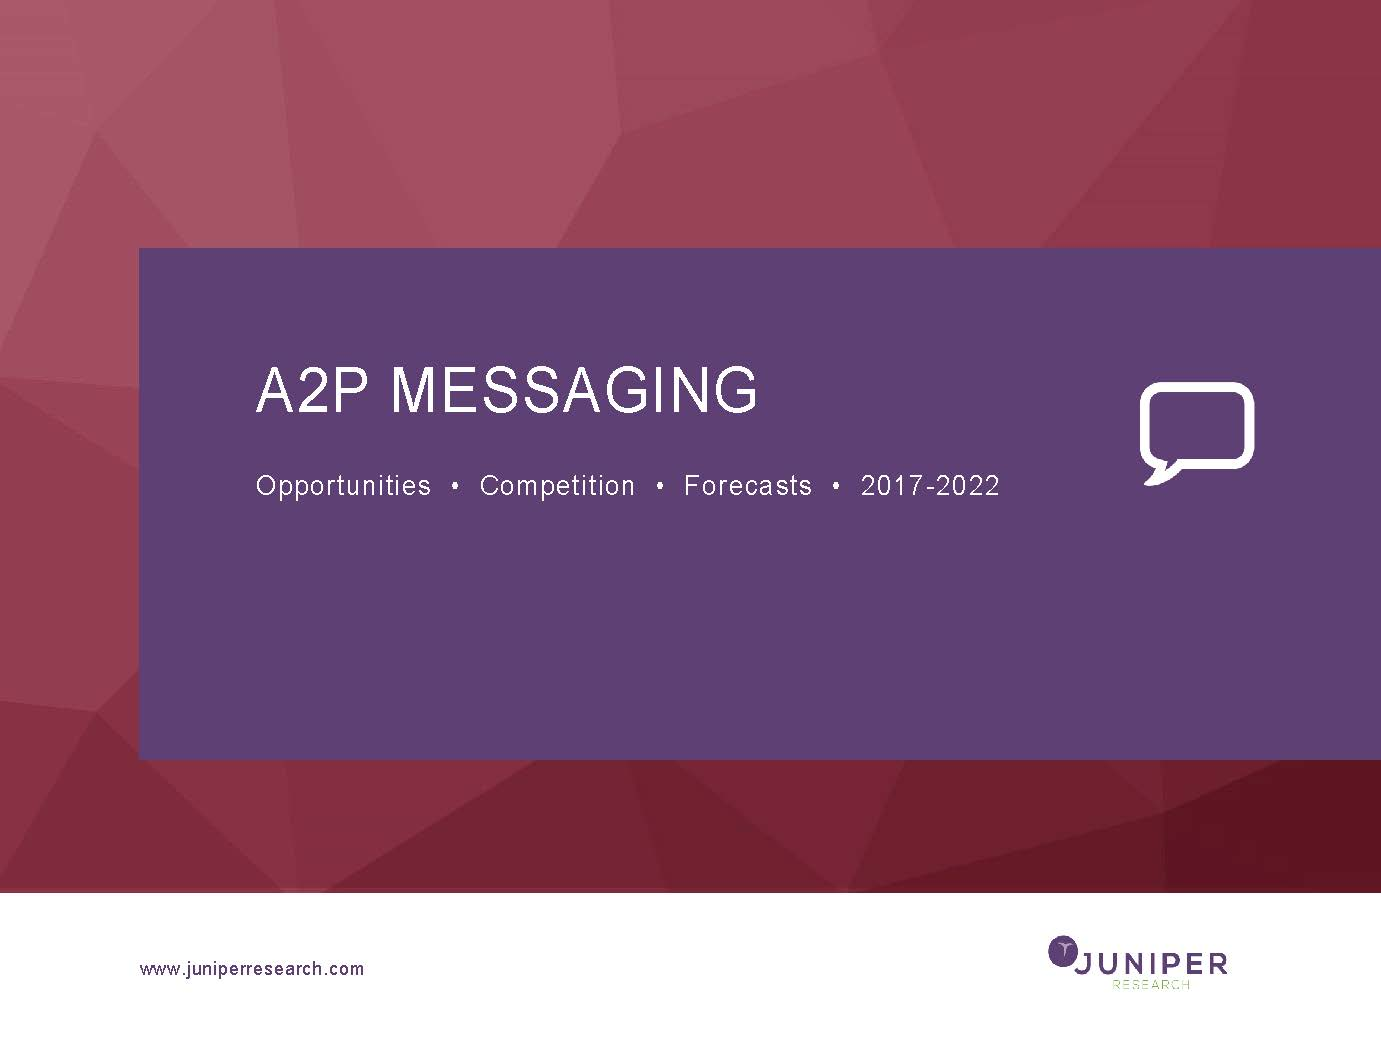 A2P Messaging - Deep Dive Strategy & Competition 2017-2022